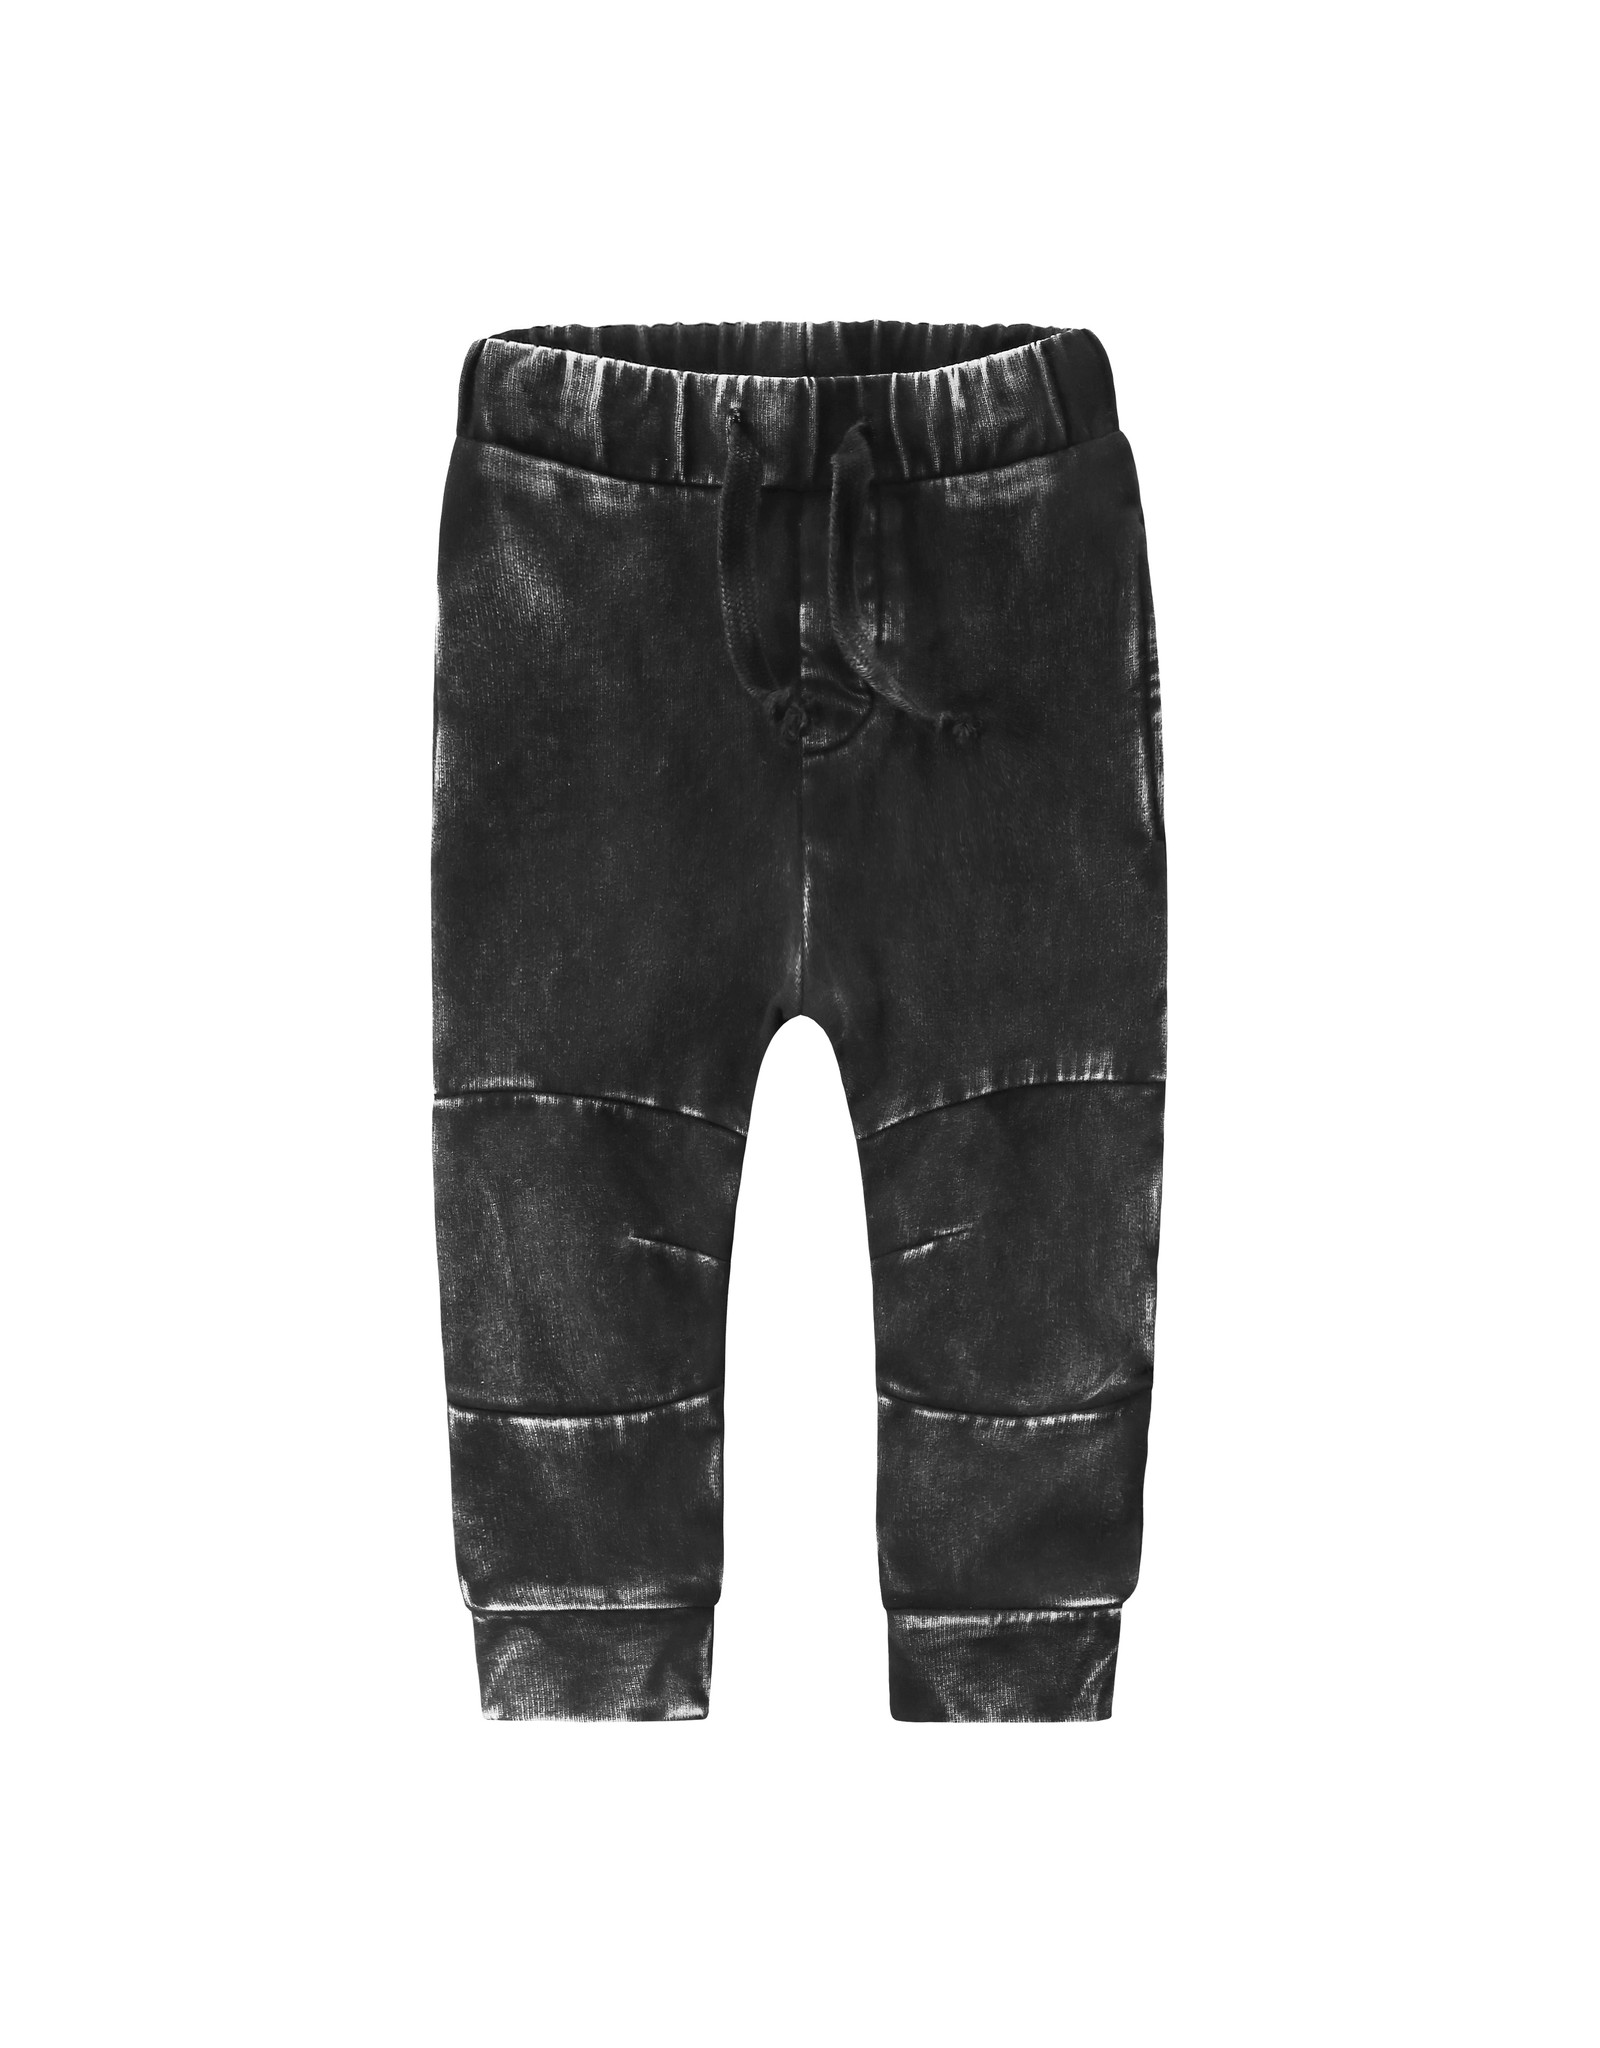 Your Wishes YW | Stonewash | Seam Jogging | Charcoal